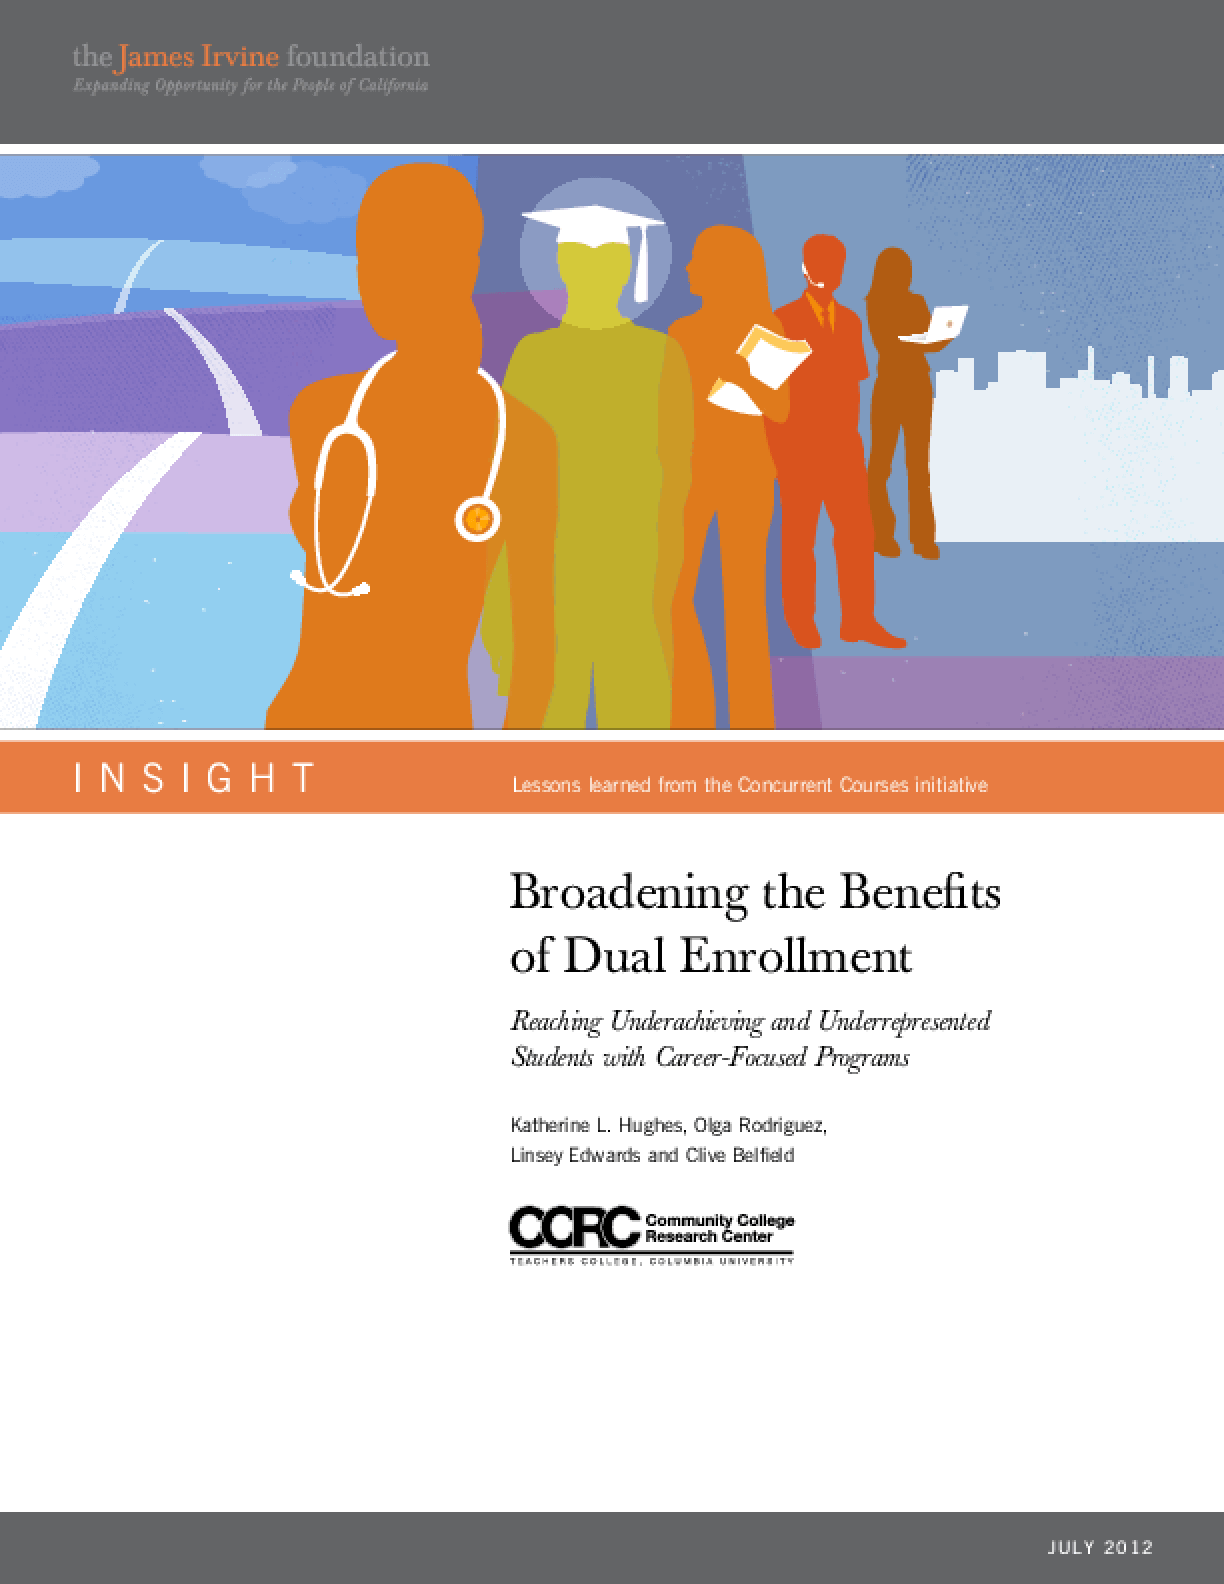 Broadening the Benefits of Dual Enrollment: Reaching Underachieving and Underrepresented Students with Career-Focused Programs